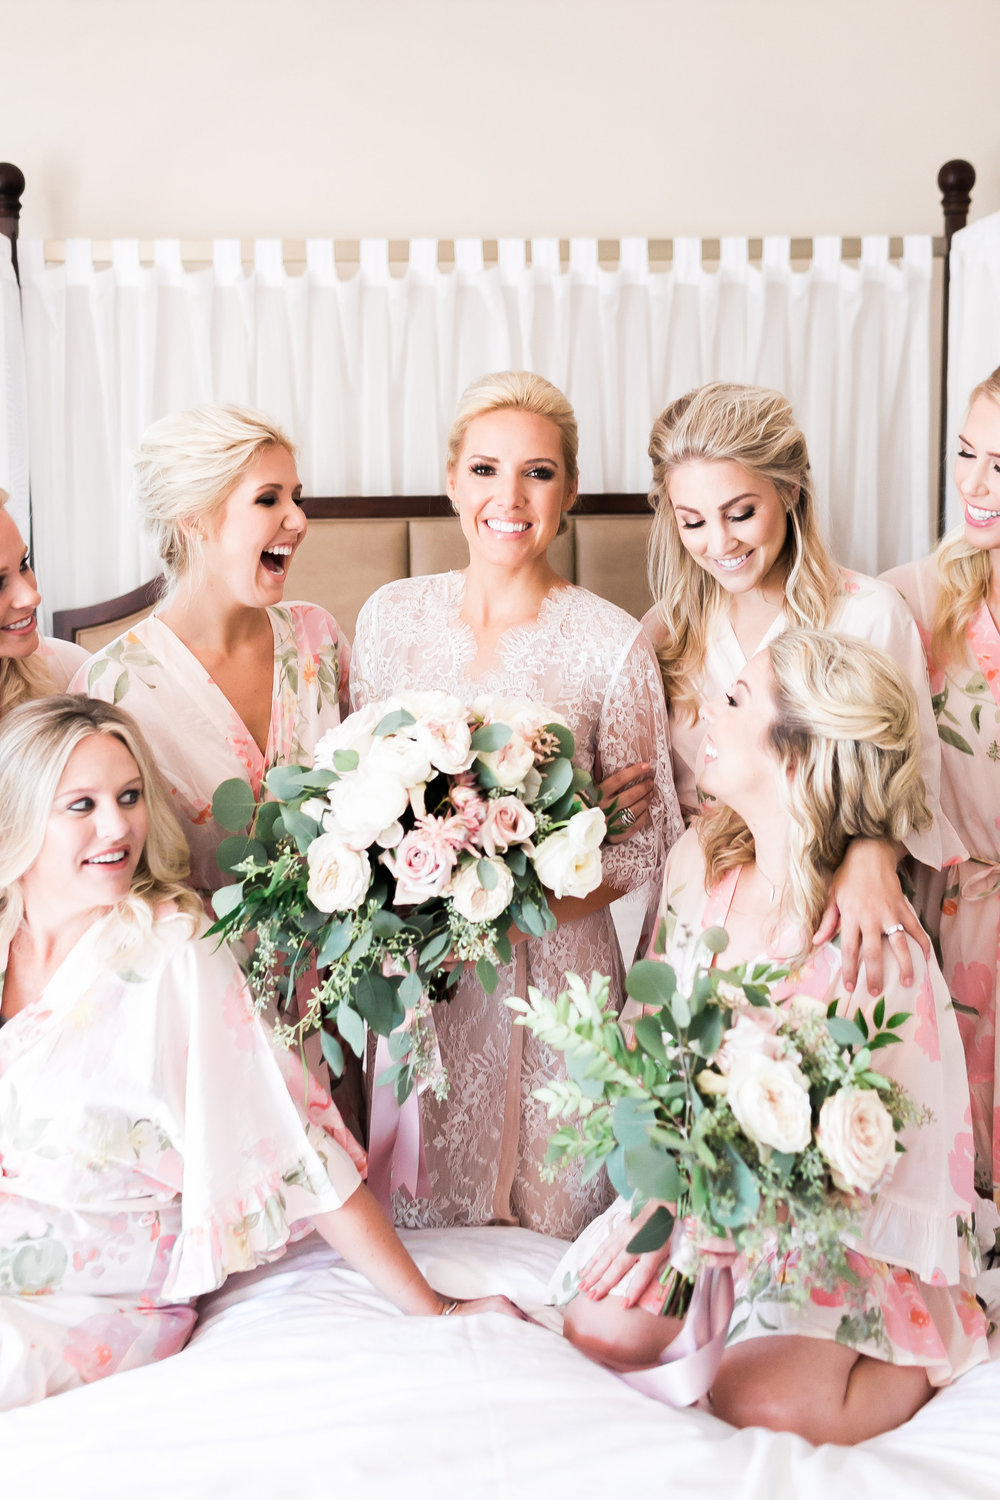 Bridesmaids in robes with with Bouquets.   CREDITS:  Destination Wedding Planner  ANDREA EPPOLITO EVENTS  · Images by  J.ANNE P  HOTOGRAPHY  · Video  HOO FILMS  · Venue Ritz Carlton Bacara Santa Barbara ·Gown  MONIQUE LHULLIER ·Bridesmaids Dresses  SHOW ME YOUR MUMU ·Stationery  SHE PAPERIE ·Bride's Shoes  BADGLEY MISCHKA ·Hair and Makeup  TEAM HAIR AND MAKEUP · Floral  BLUE MAGNOLIA ·Linen  LA TAVOLA ·Decor Rentals  TENT MERCHANT ·Calligraphy  EBB ·Lighting  FIVE STAR AV ·Ice Cream Station  MCCONNELL'S ICE CREAM